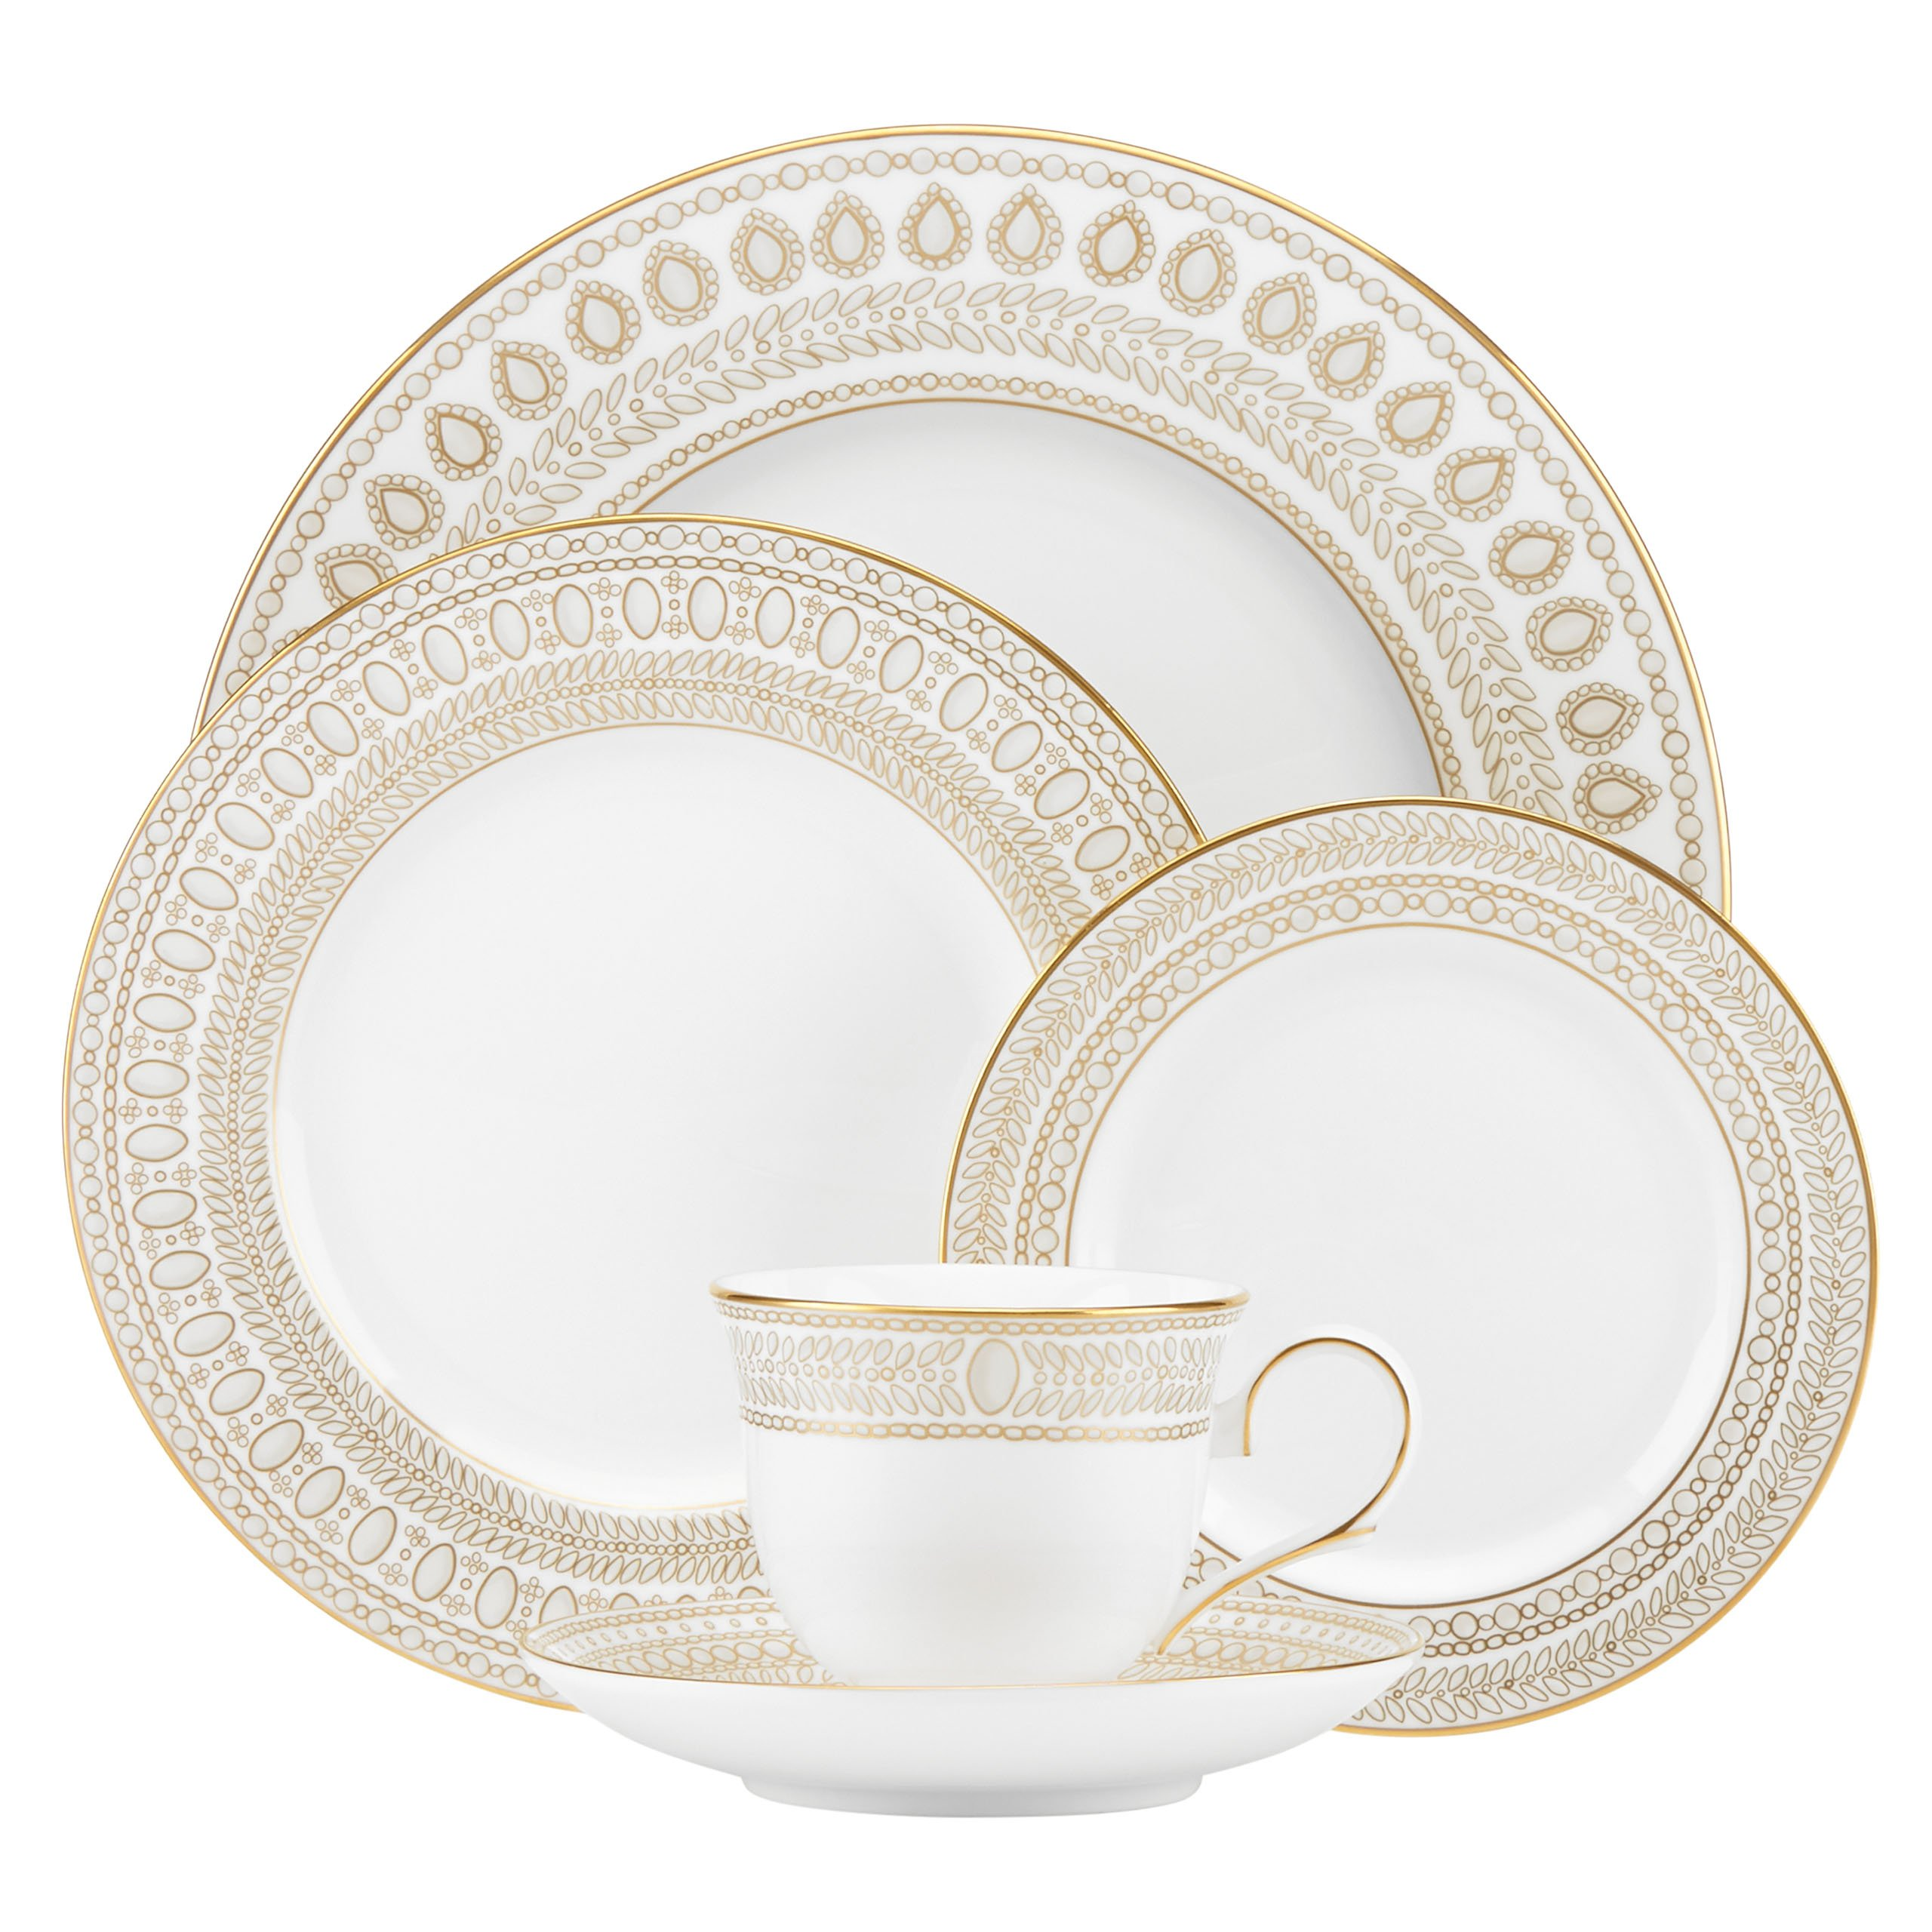 Lenox Marchesa Gilded Pearl 5 Piece Place Setting, White by Lenox